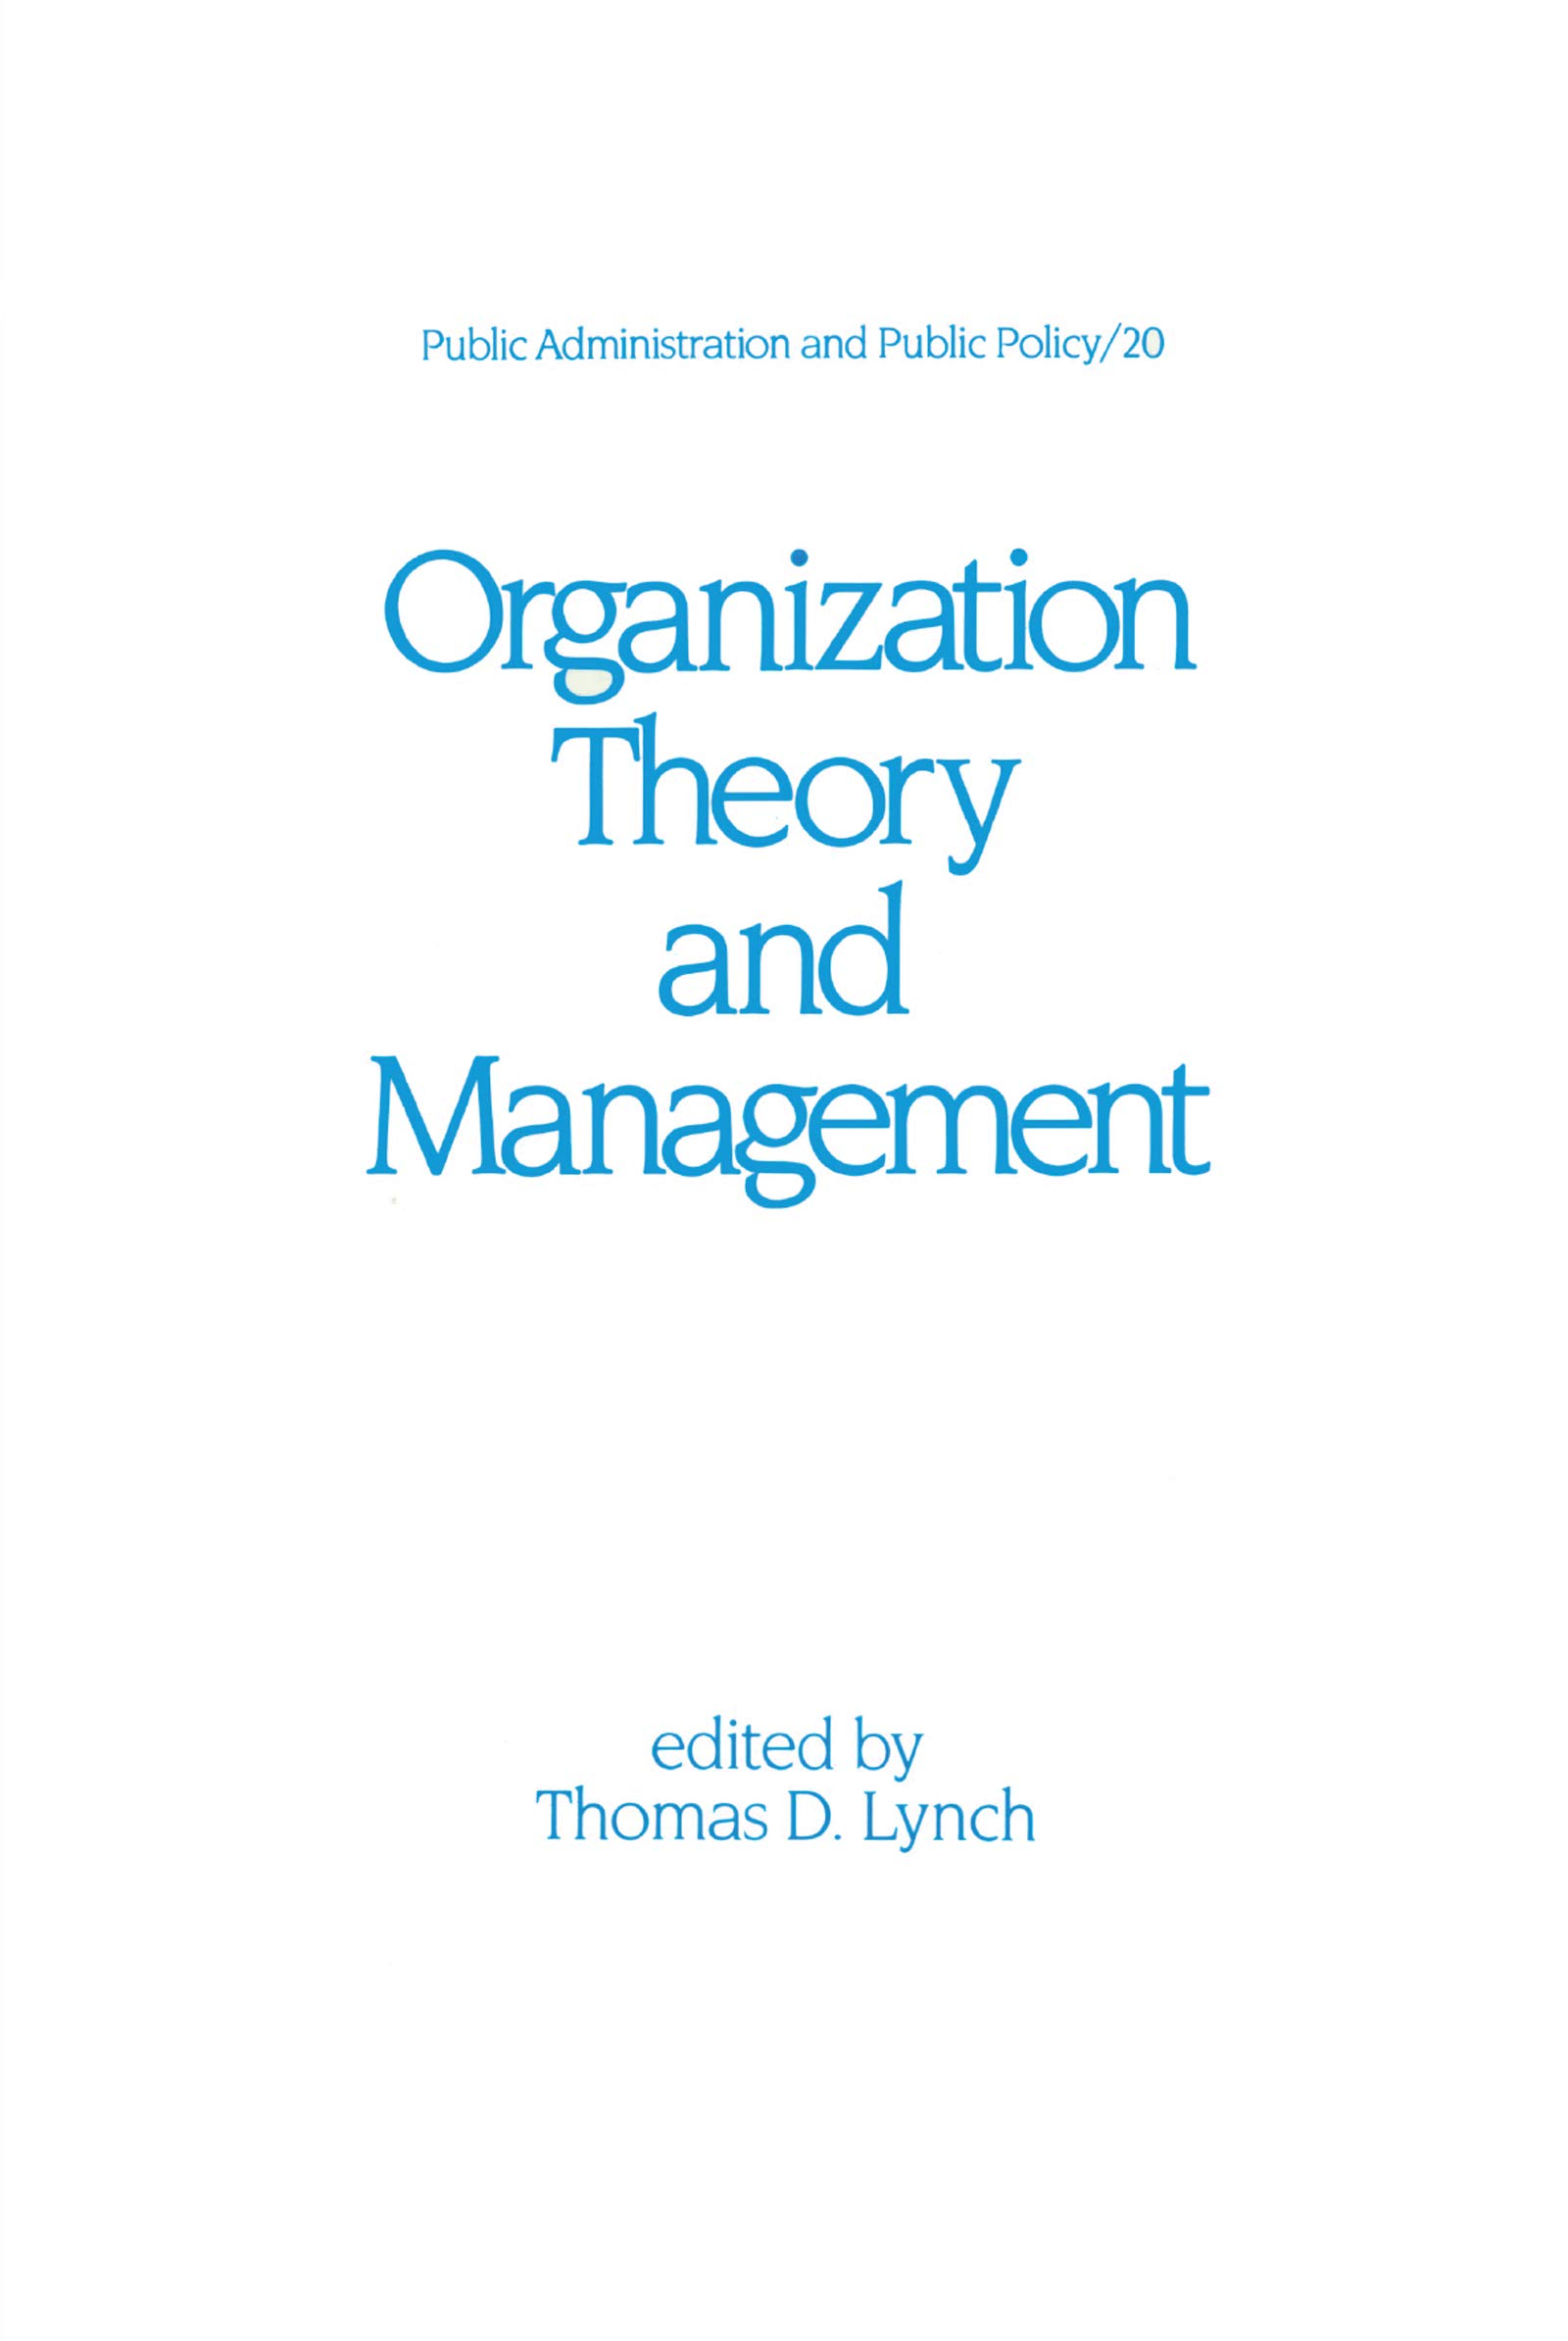 Organization Theory and Management (Public Administration and Public Policy Book 20)